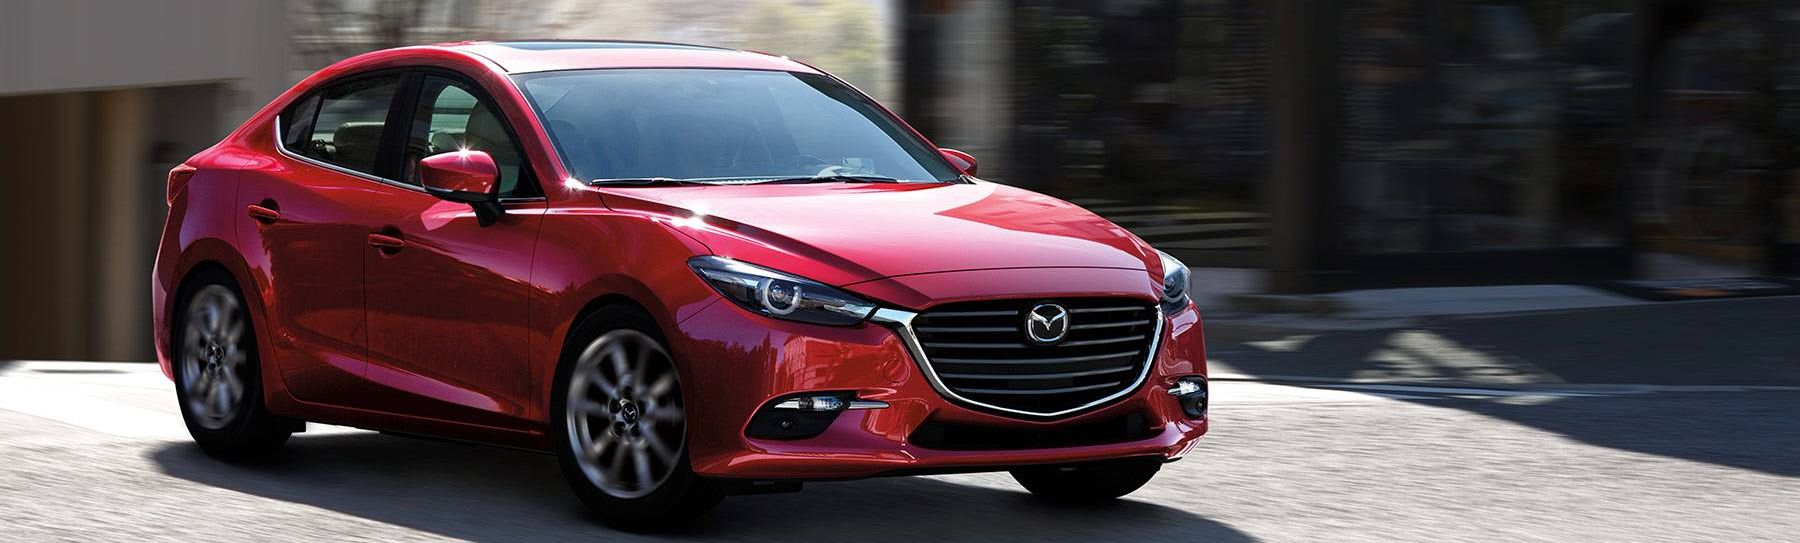 2018 Mazda3 Leasing in Sacramento, CA